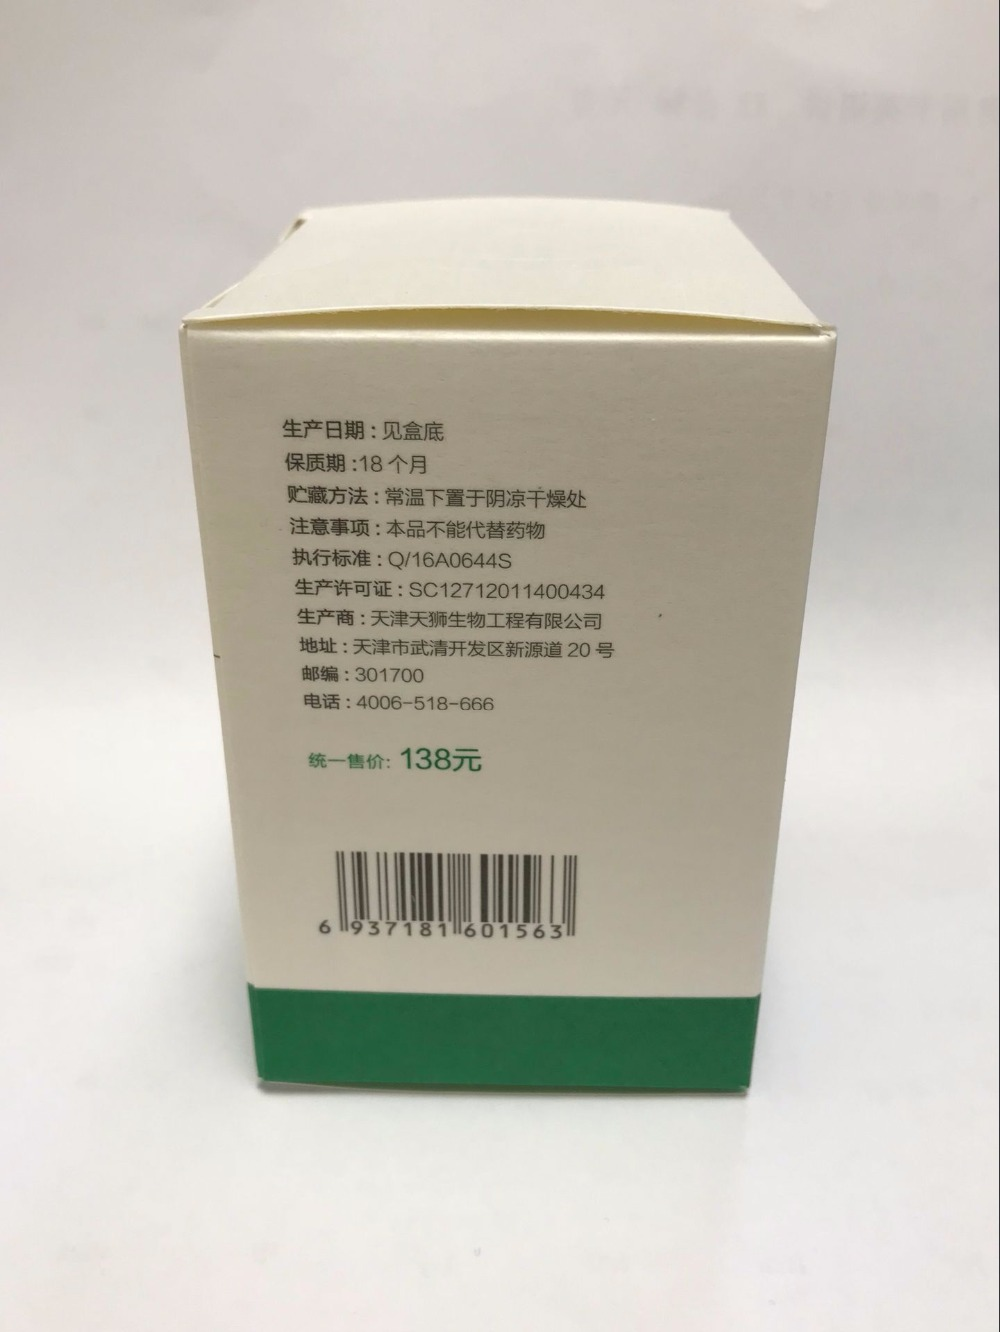 New package 2 Boxes of Tien Super Calcium Produced in MAR.2018 2 bottles of tien spirulina capsules enhance immunity nutritional